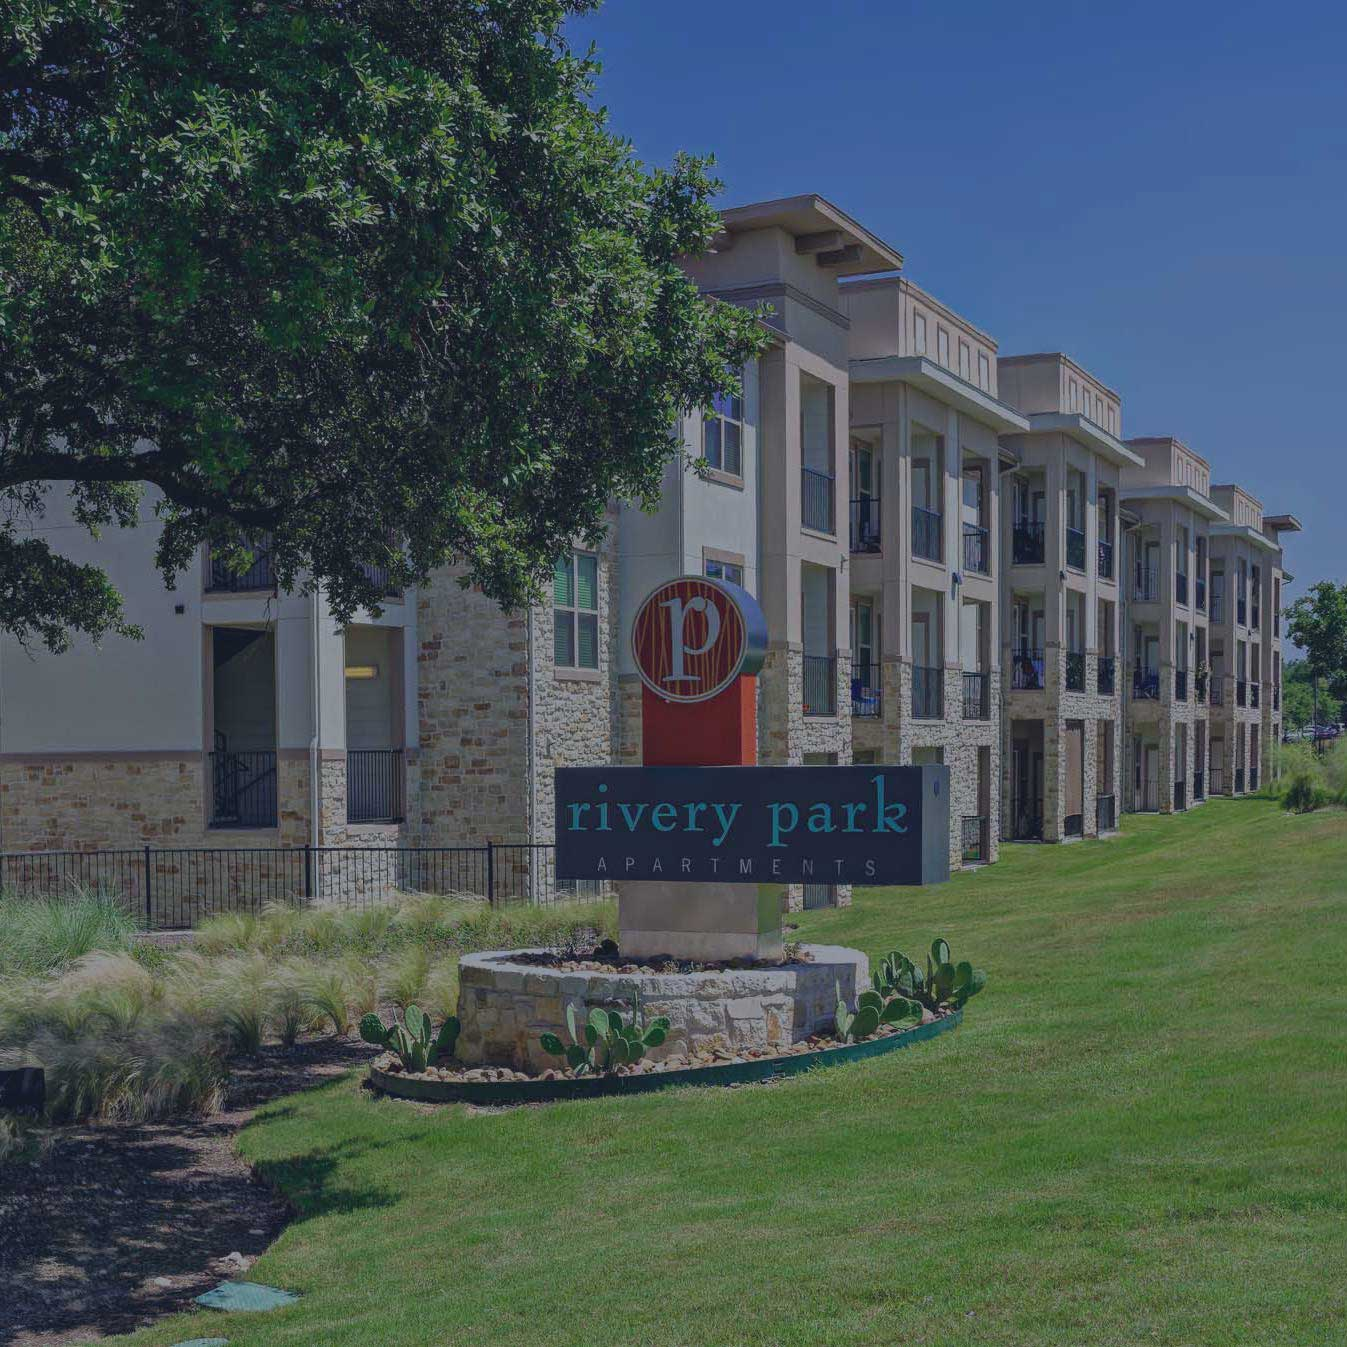 Rivery Park Apartments